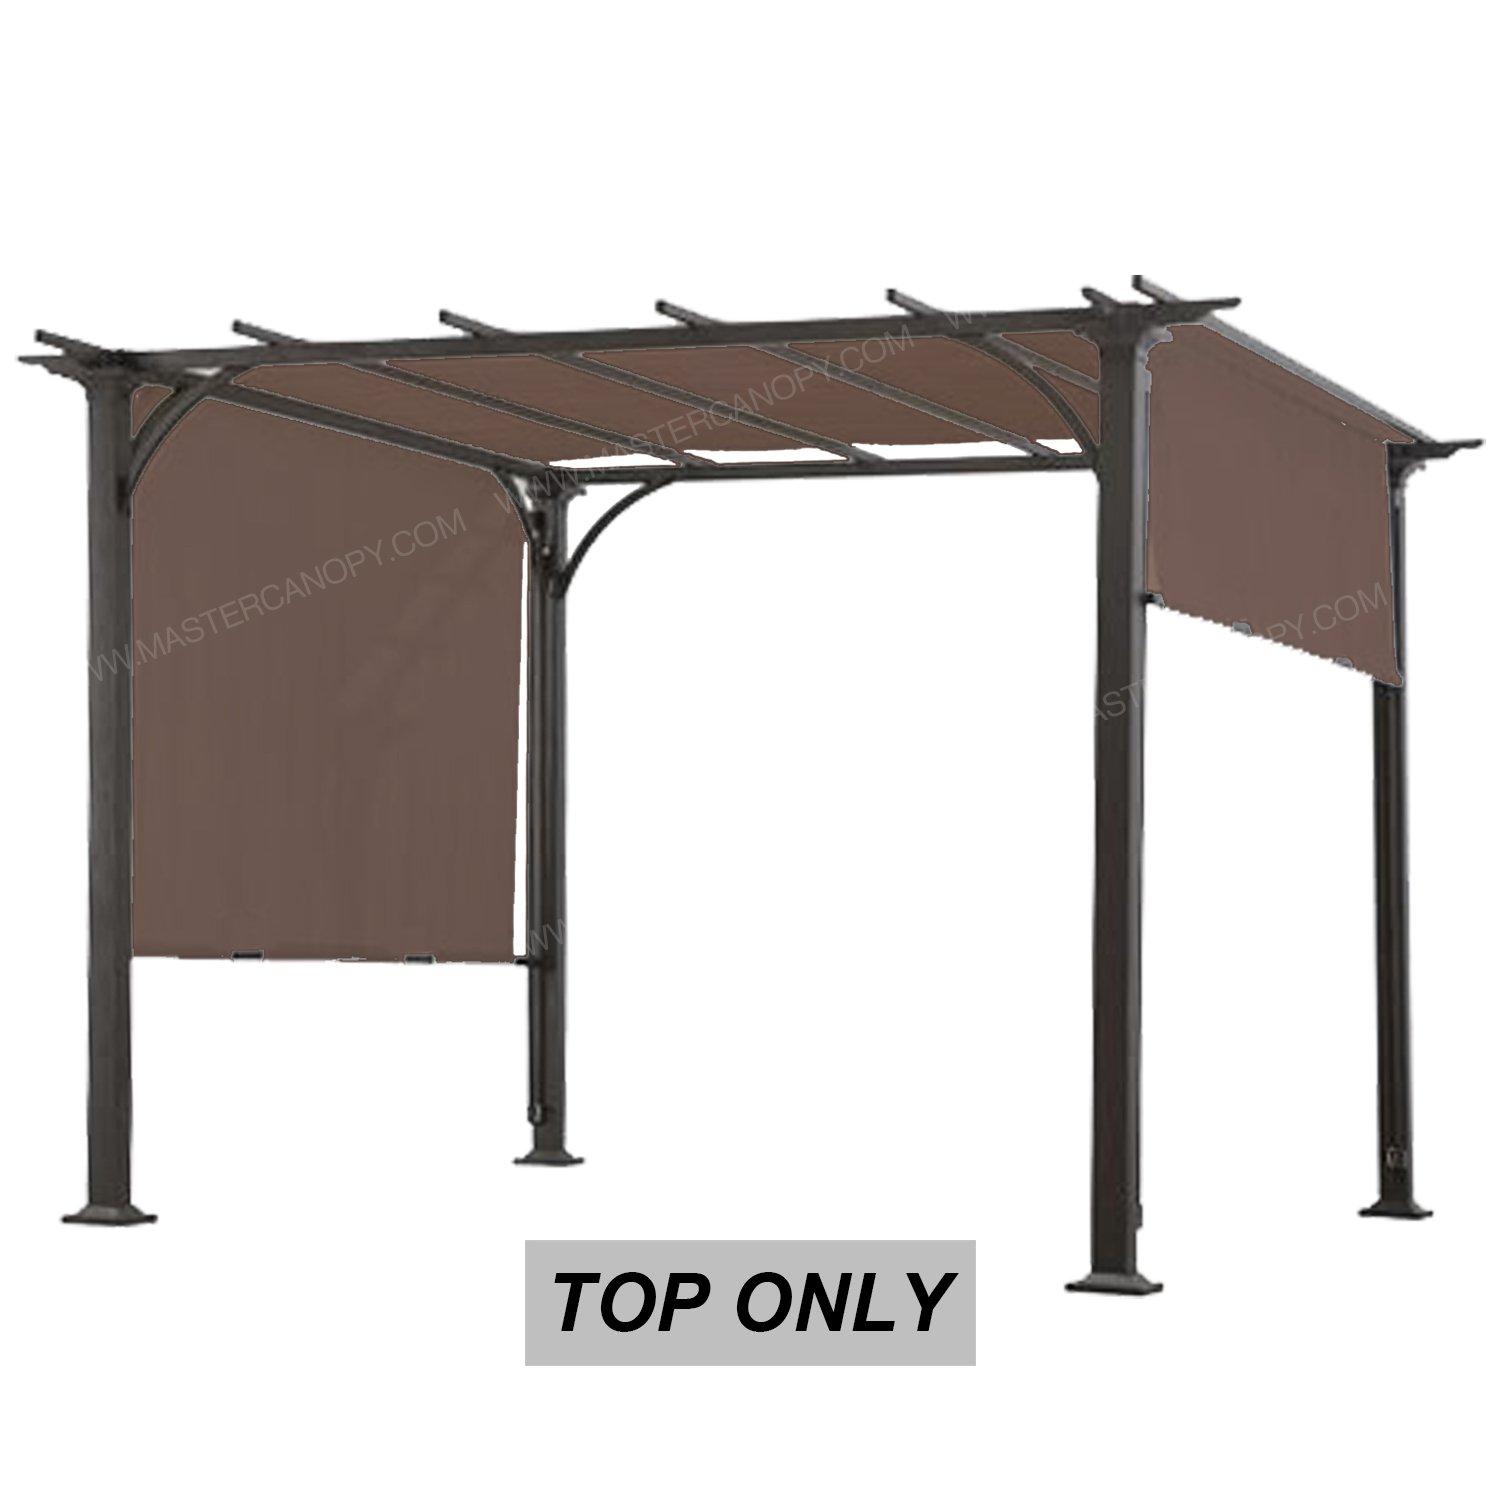 MASTERCANOPY Universal Doubleton Steel Pergola Replacement Cover for Pergola Structures 80''x 205''(Cover only